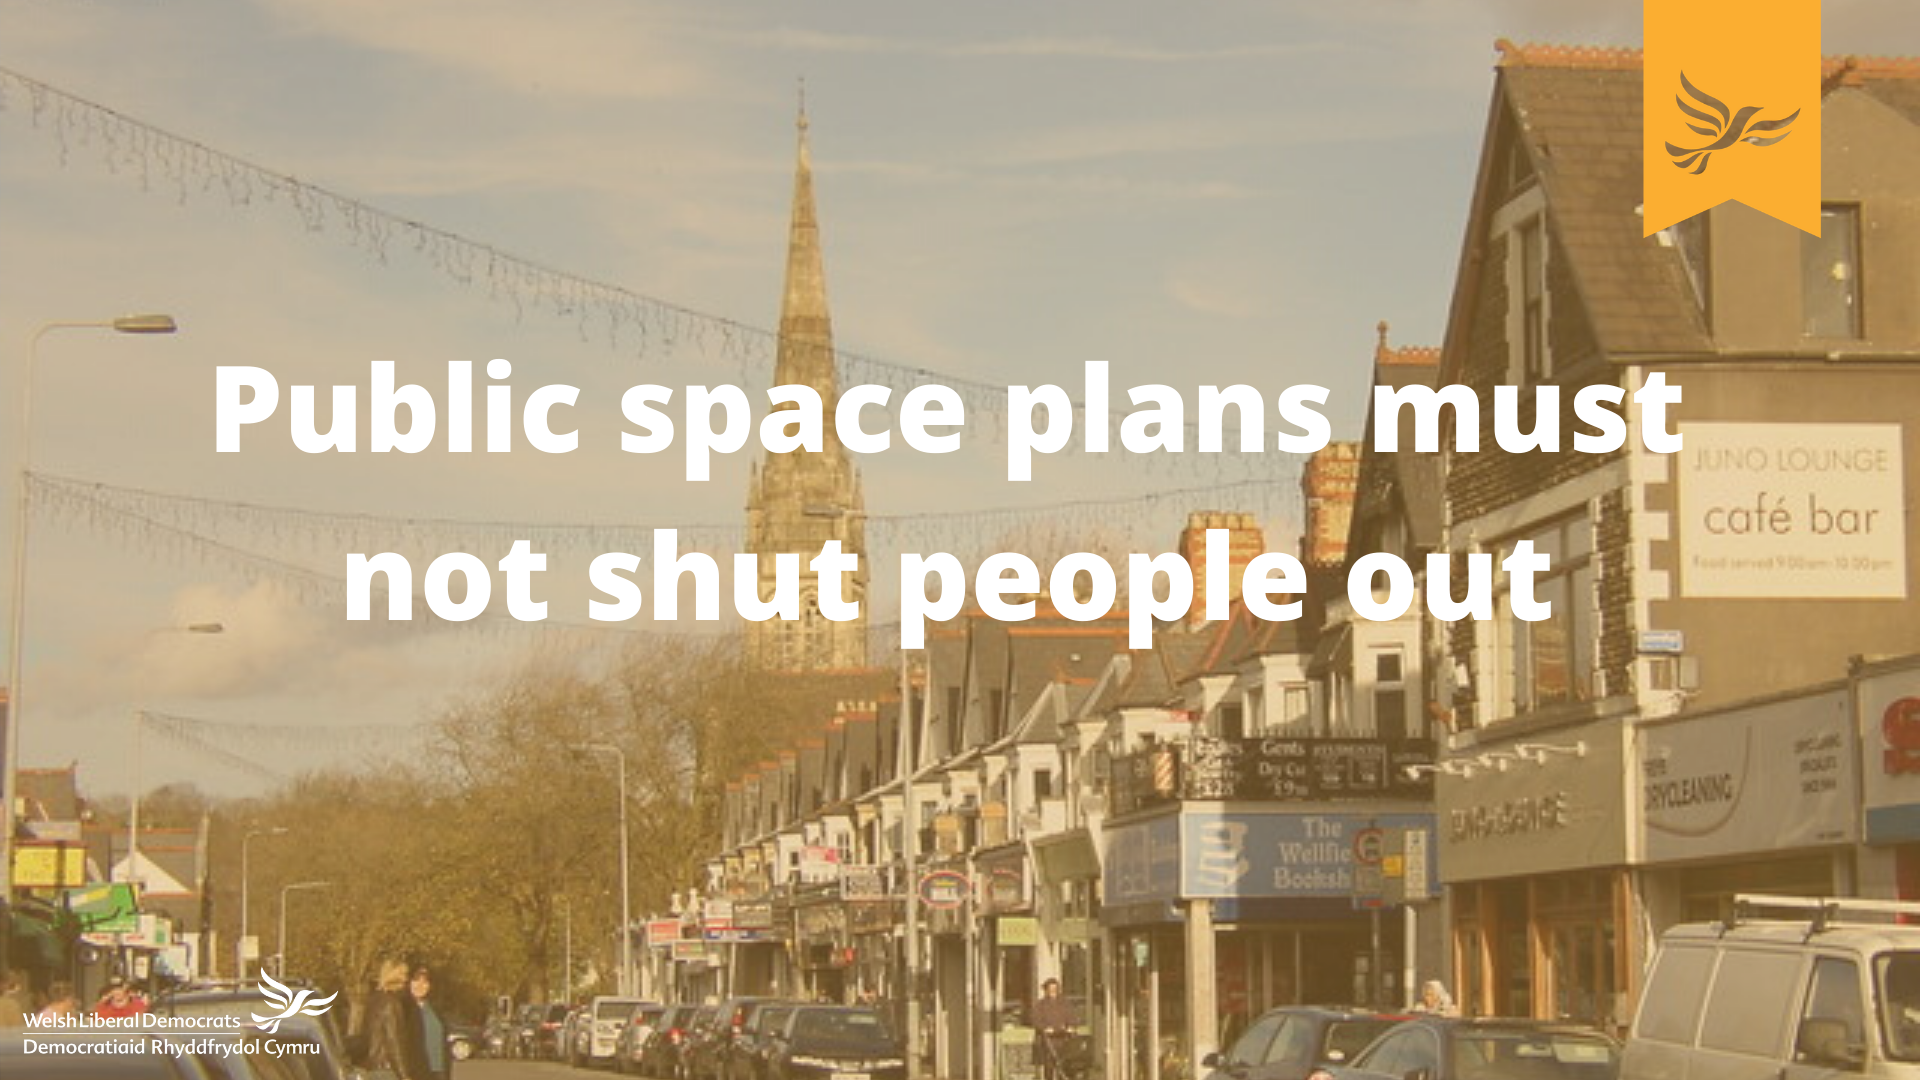 Public space plans must not shut people out - Cardiff Lib Dems